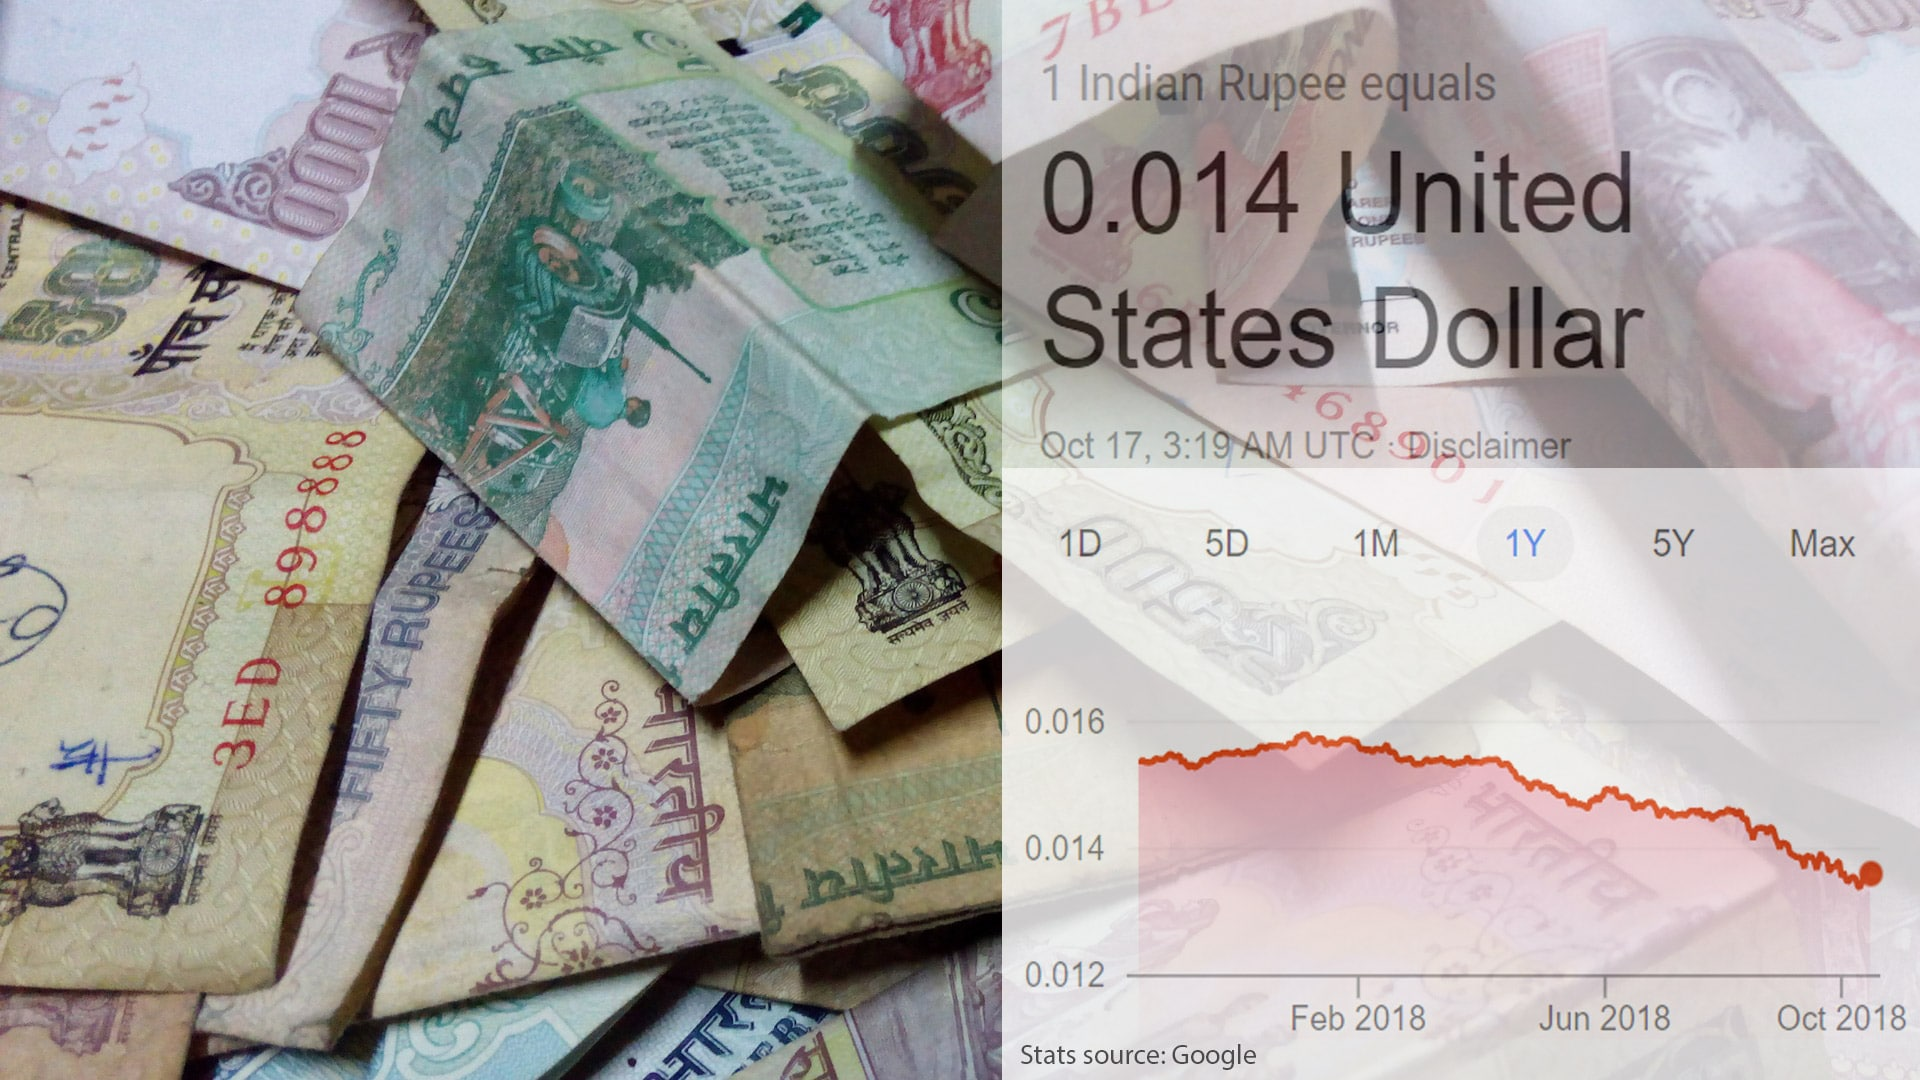 Fall of Indian Rupee Value